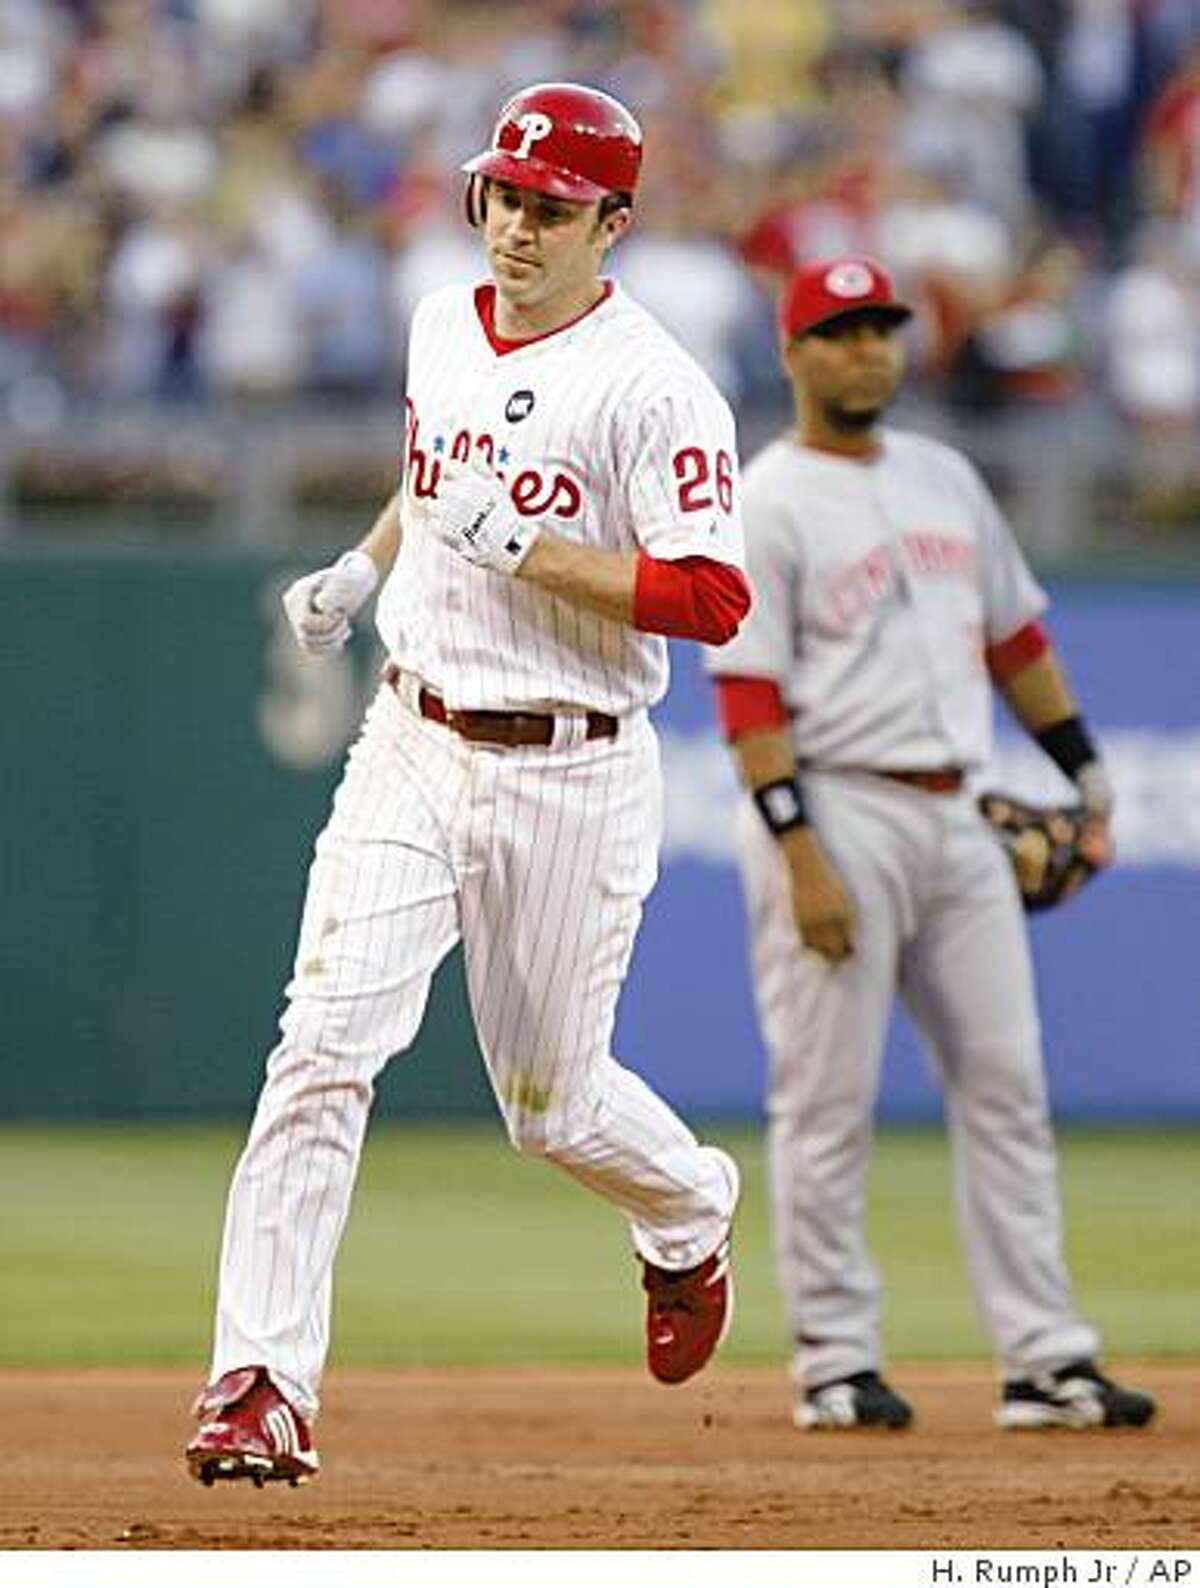 Philadelphia Phillies' Chase Utley (26) runs the bases after hitting a three-run home run against the Cincinnati Reds' in the first inning of a baseball game Monday, July 6, 2009, in Philadelphia. (AP Photo/H. Rumph Jr.)